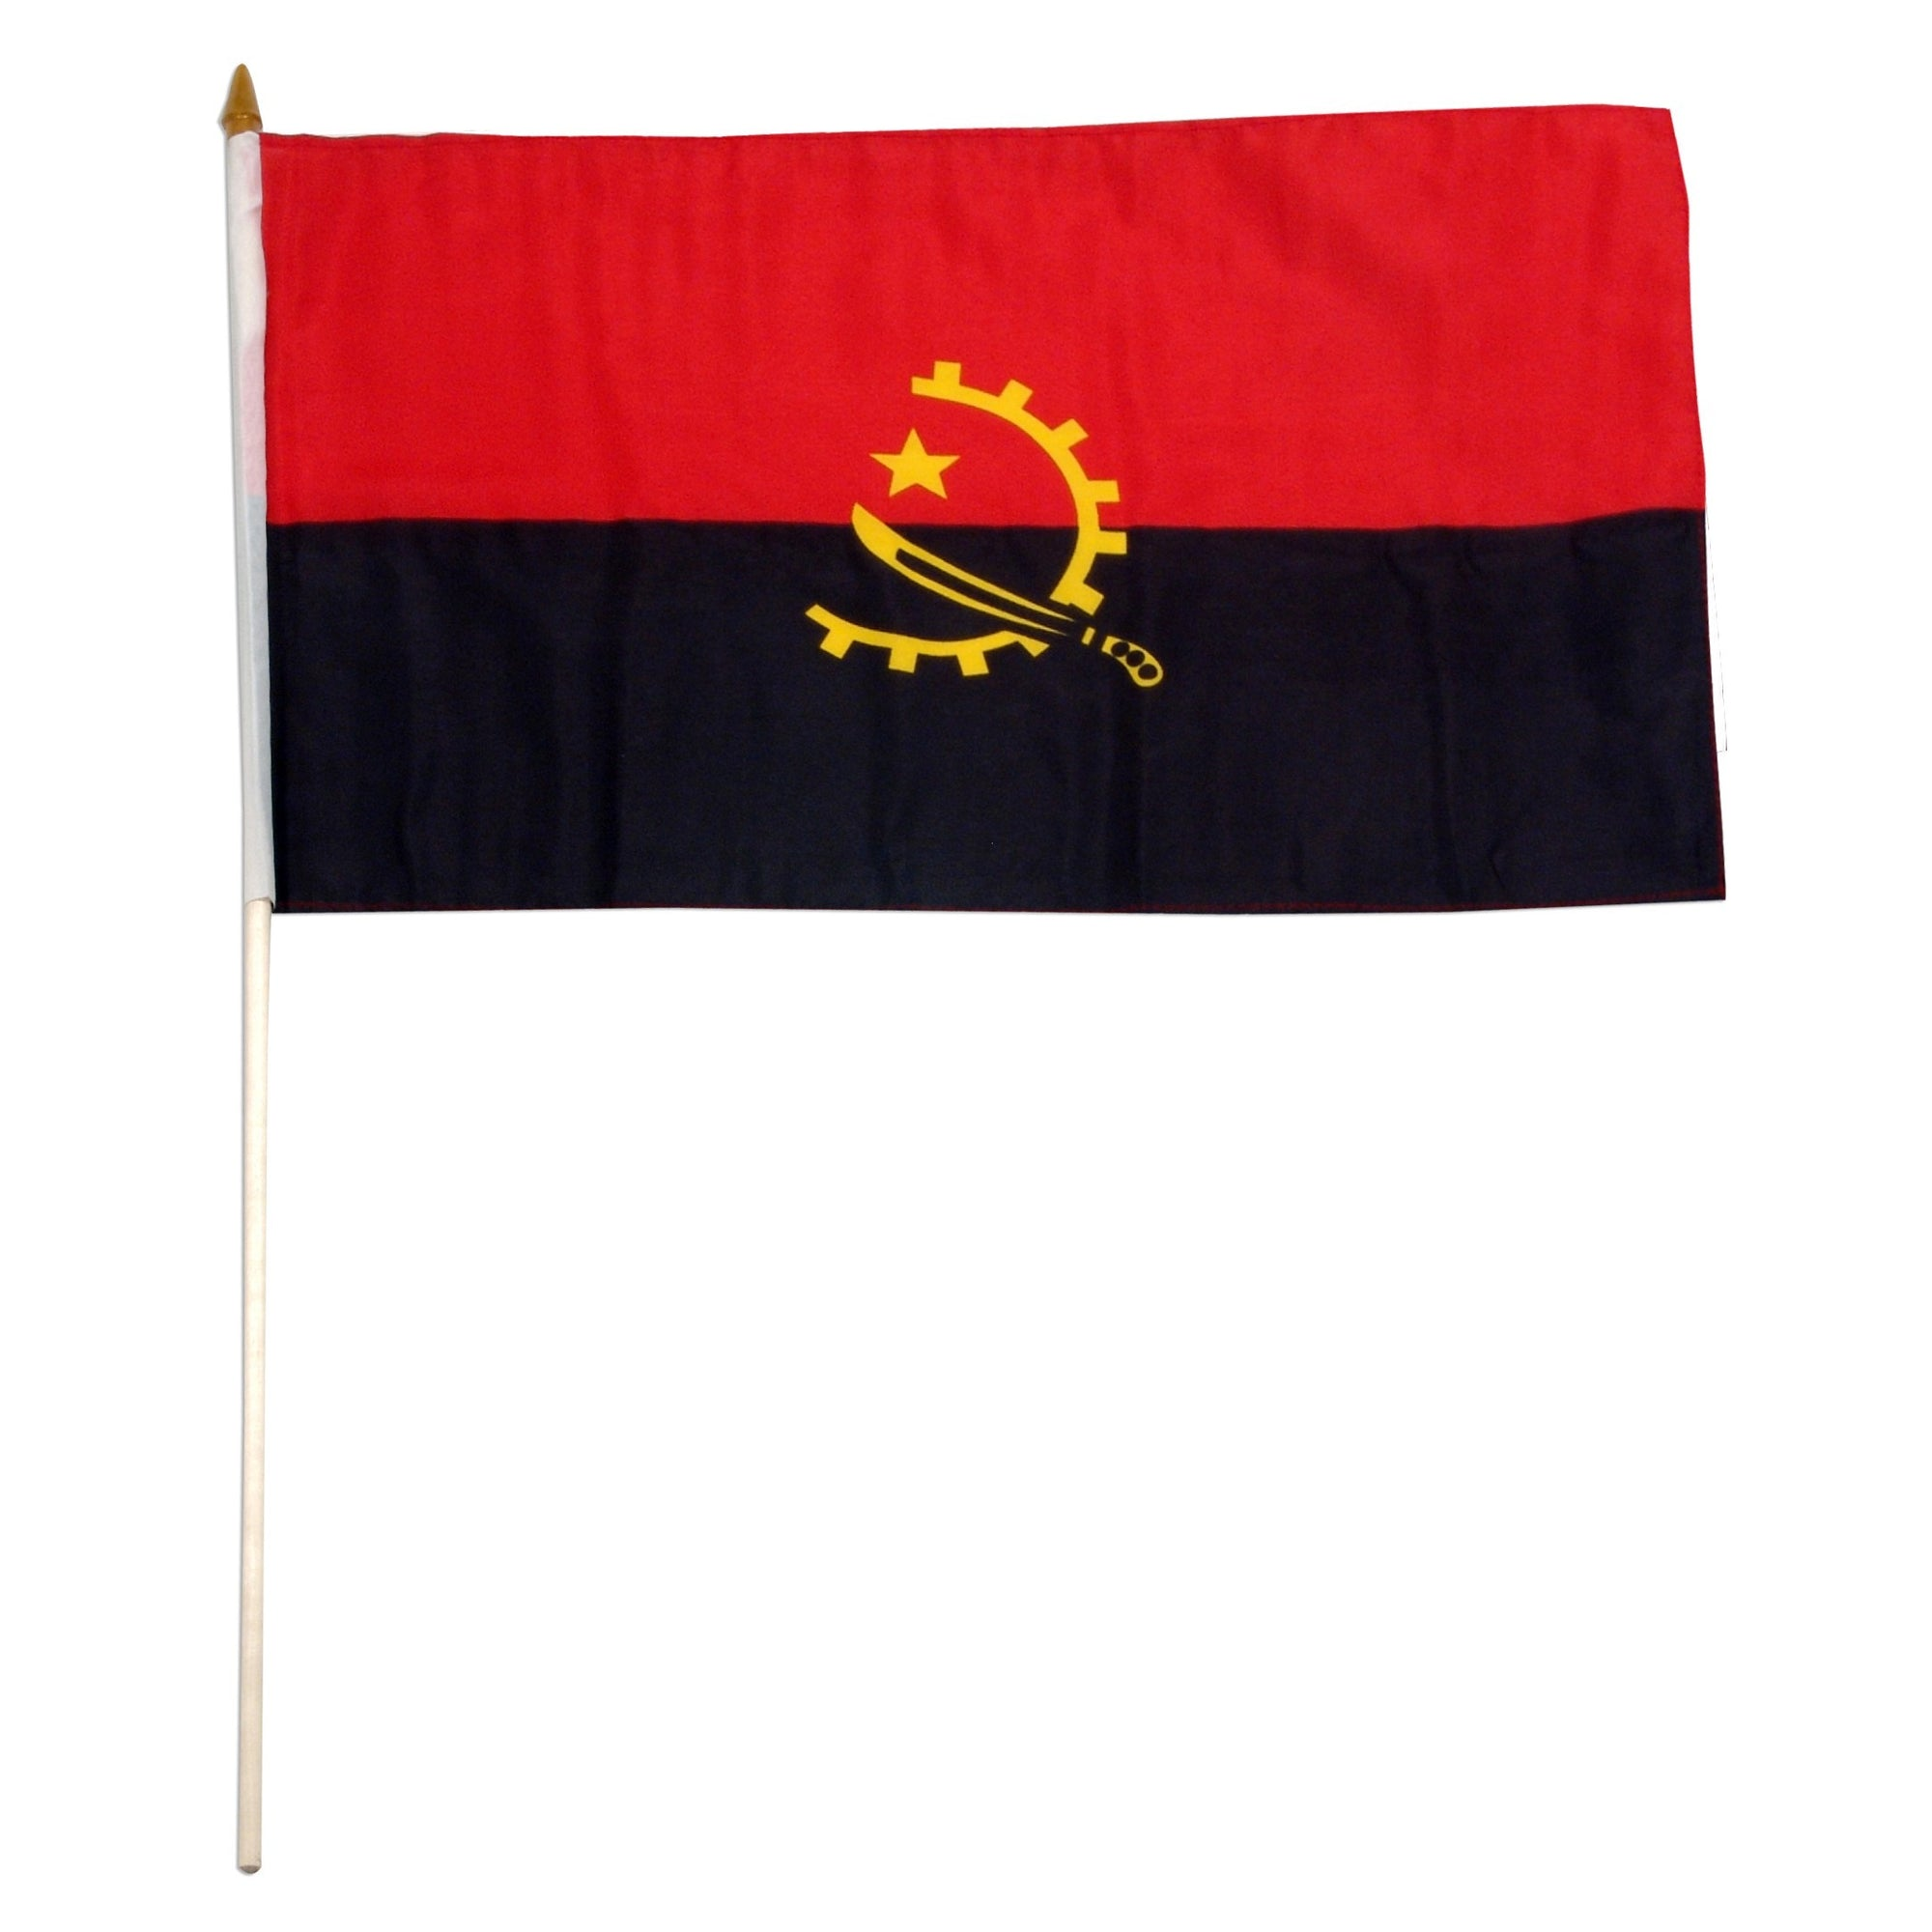 "Angola 12"" x 18"" inch Mounted Country Angolan Flag"